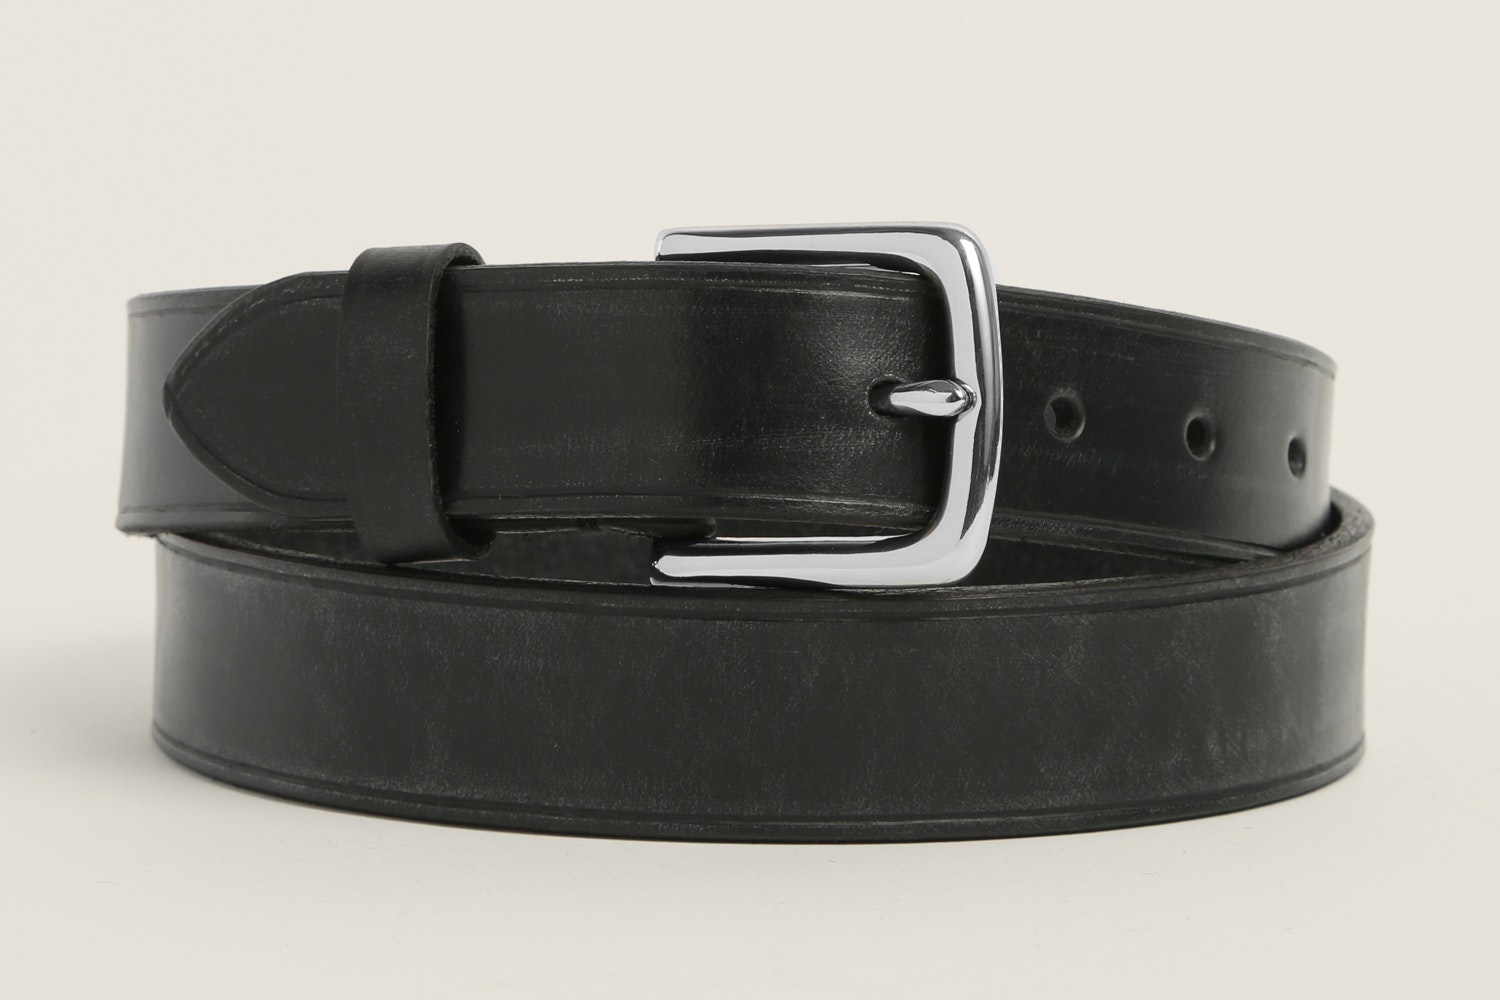 British Belt Co. Farley Belt